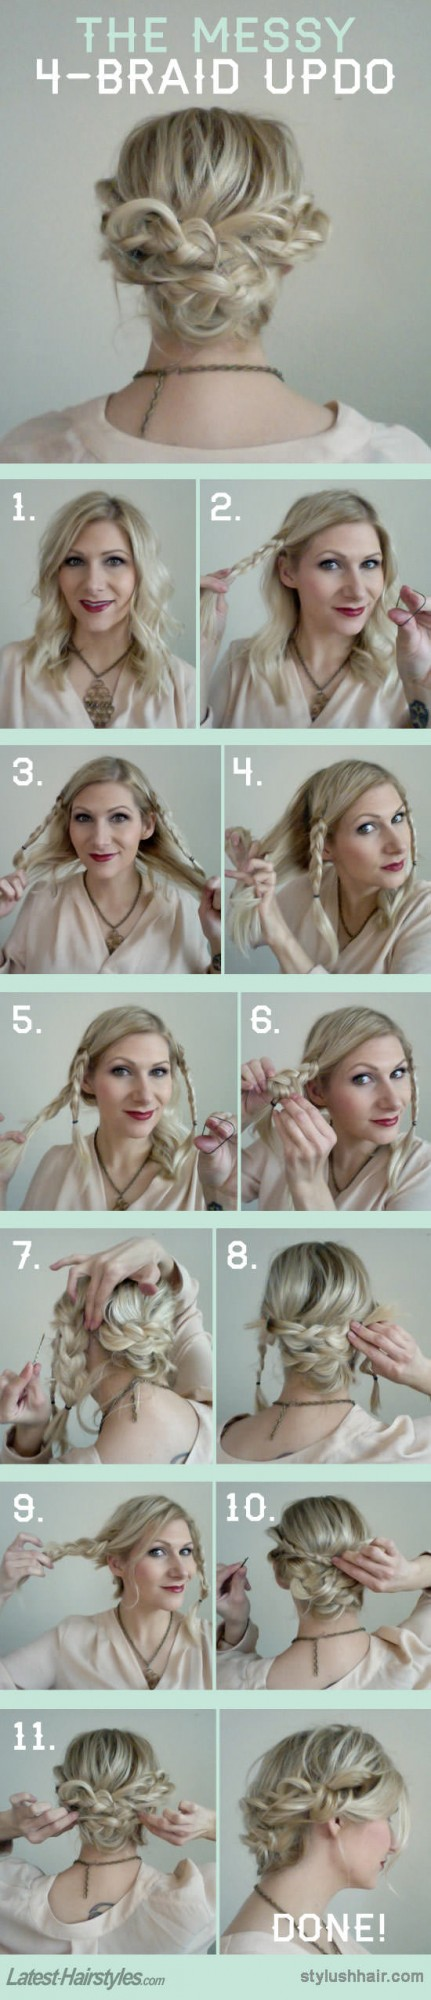 22 Gorgeous Hairstyle Ideas and Tutorials for New Year's Eve (1)